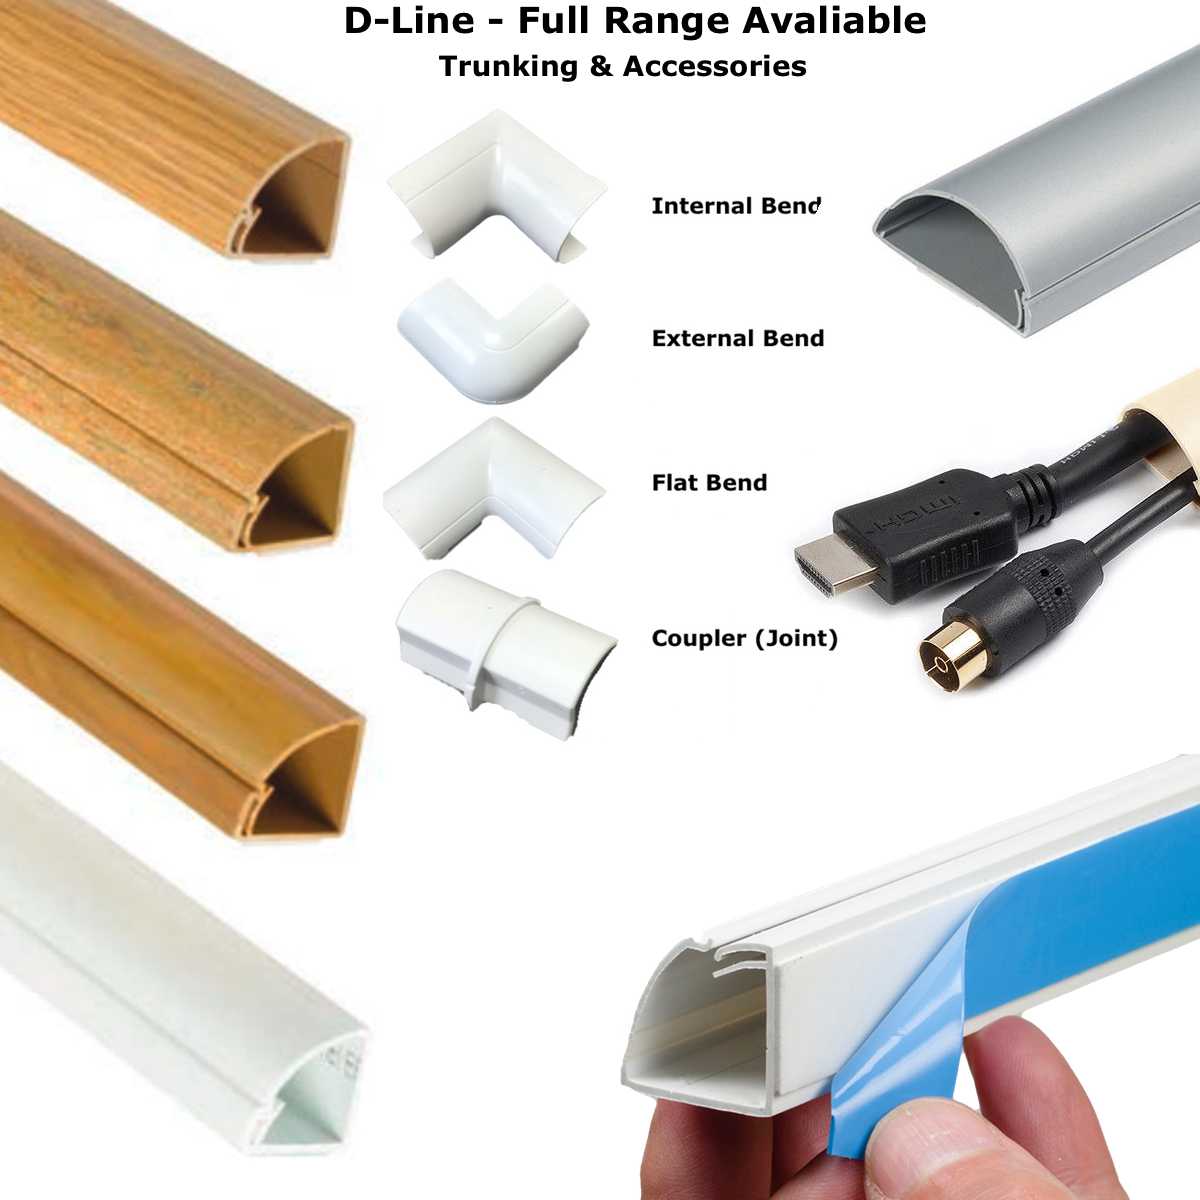 D-LINE SELF ADHESIVE TRUNKING TV CABLE COVER PVC PLASTIC DLINE ...